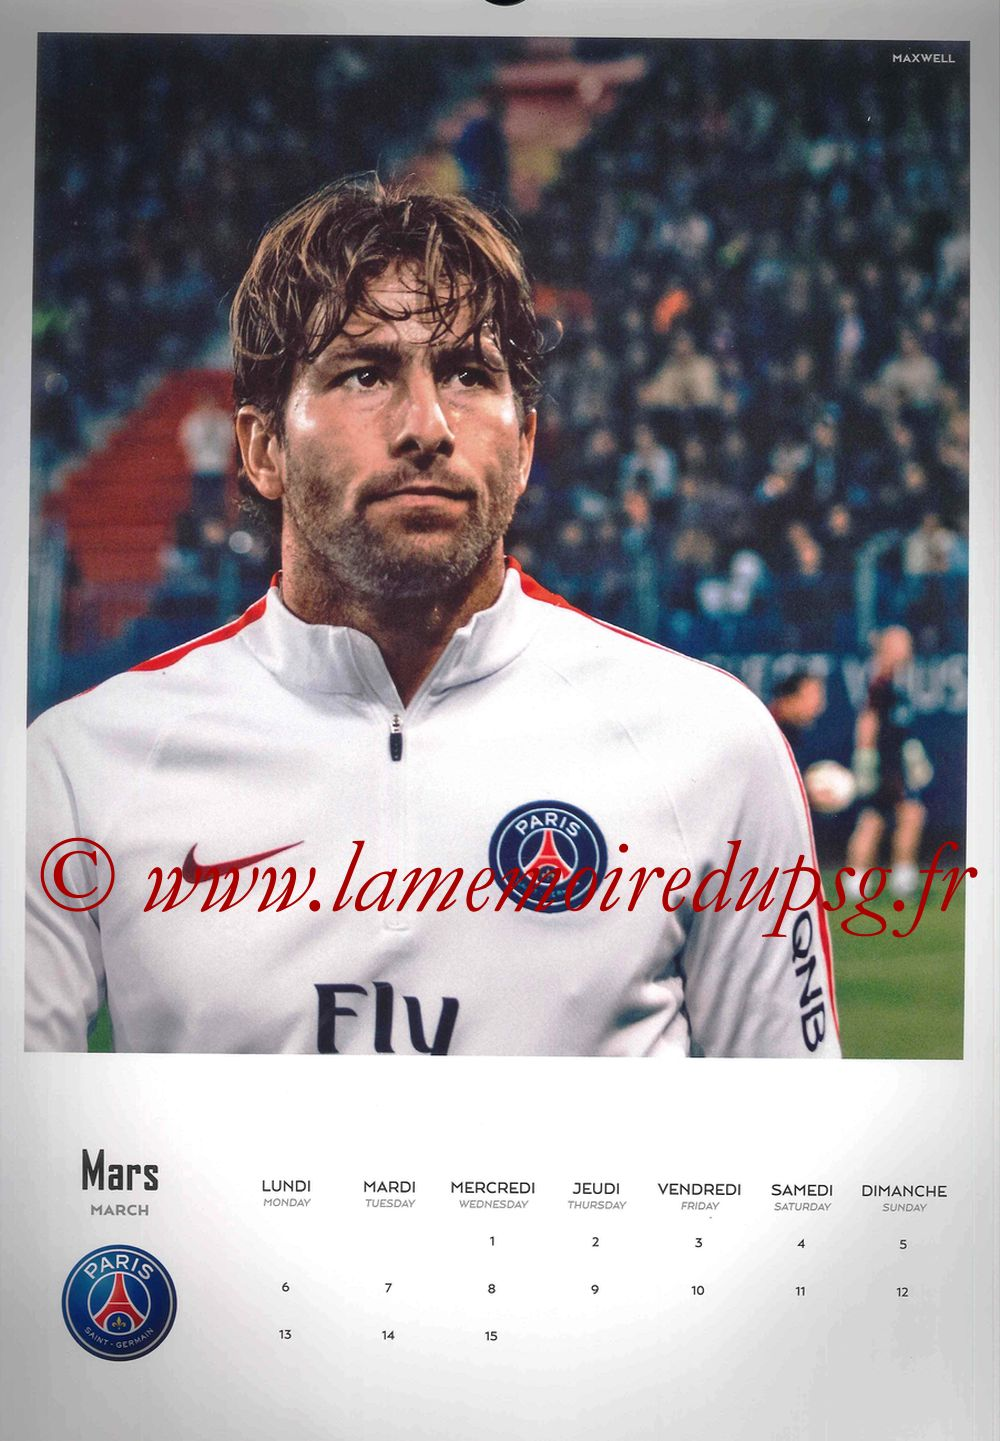 Calendrier PSG 2017 - Page 05 - MAXWELL